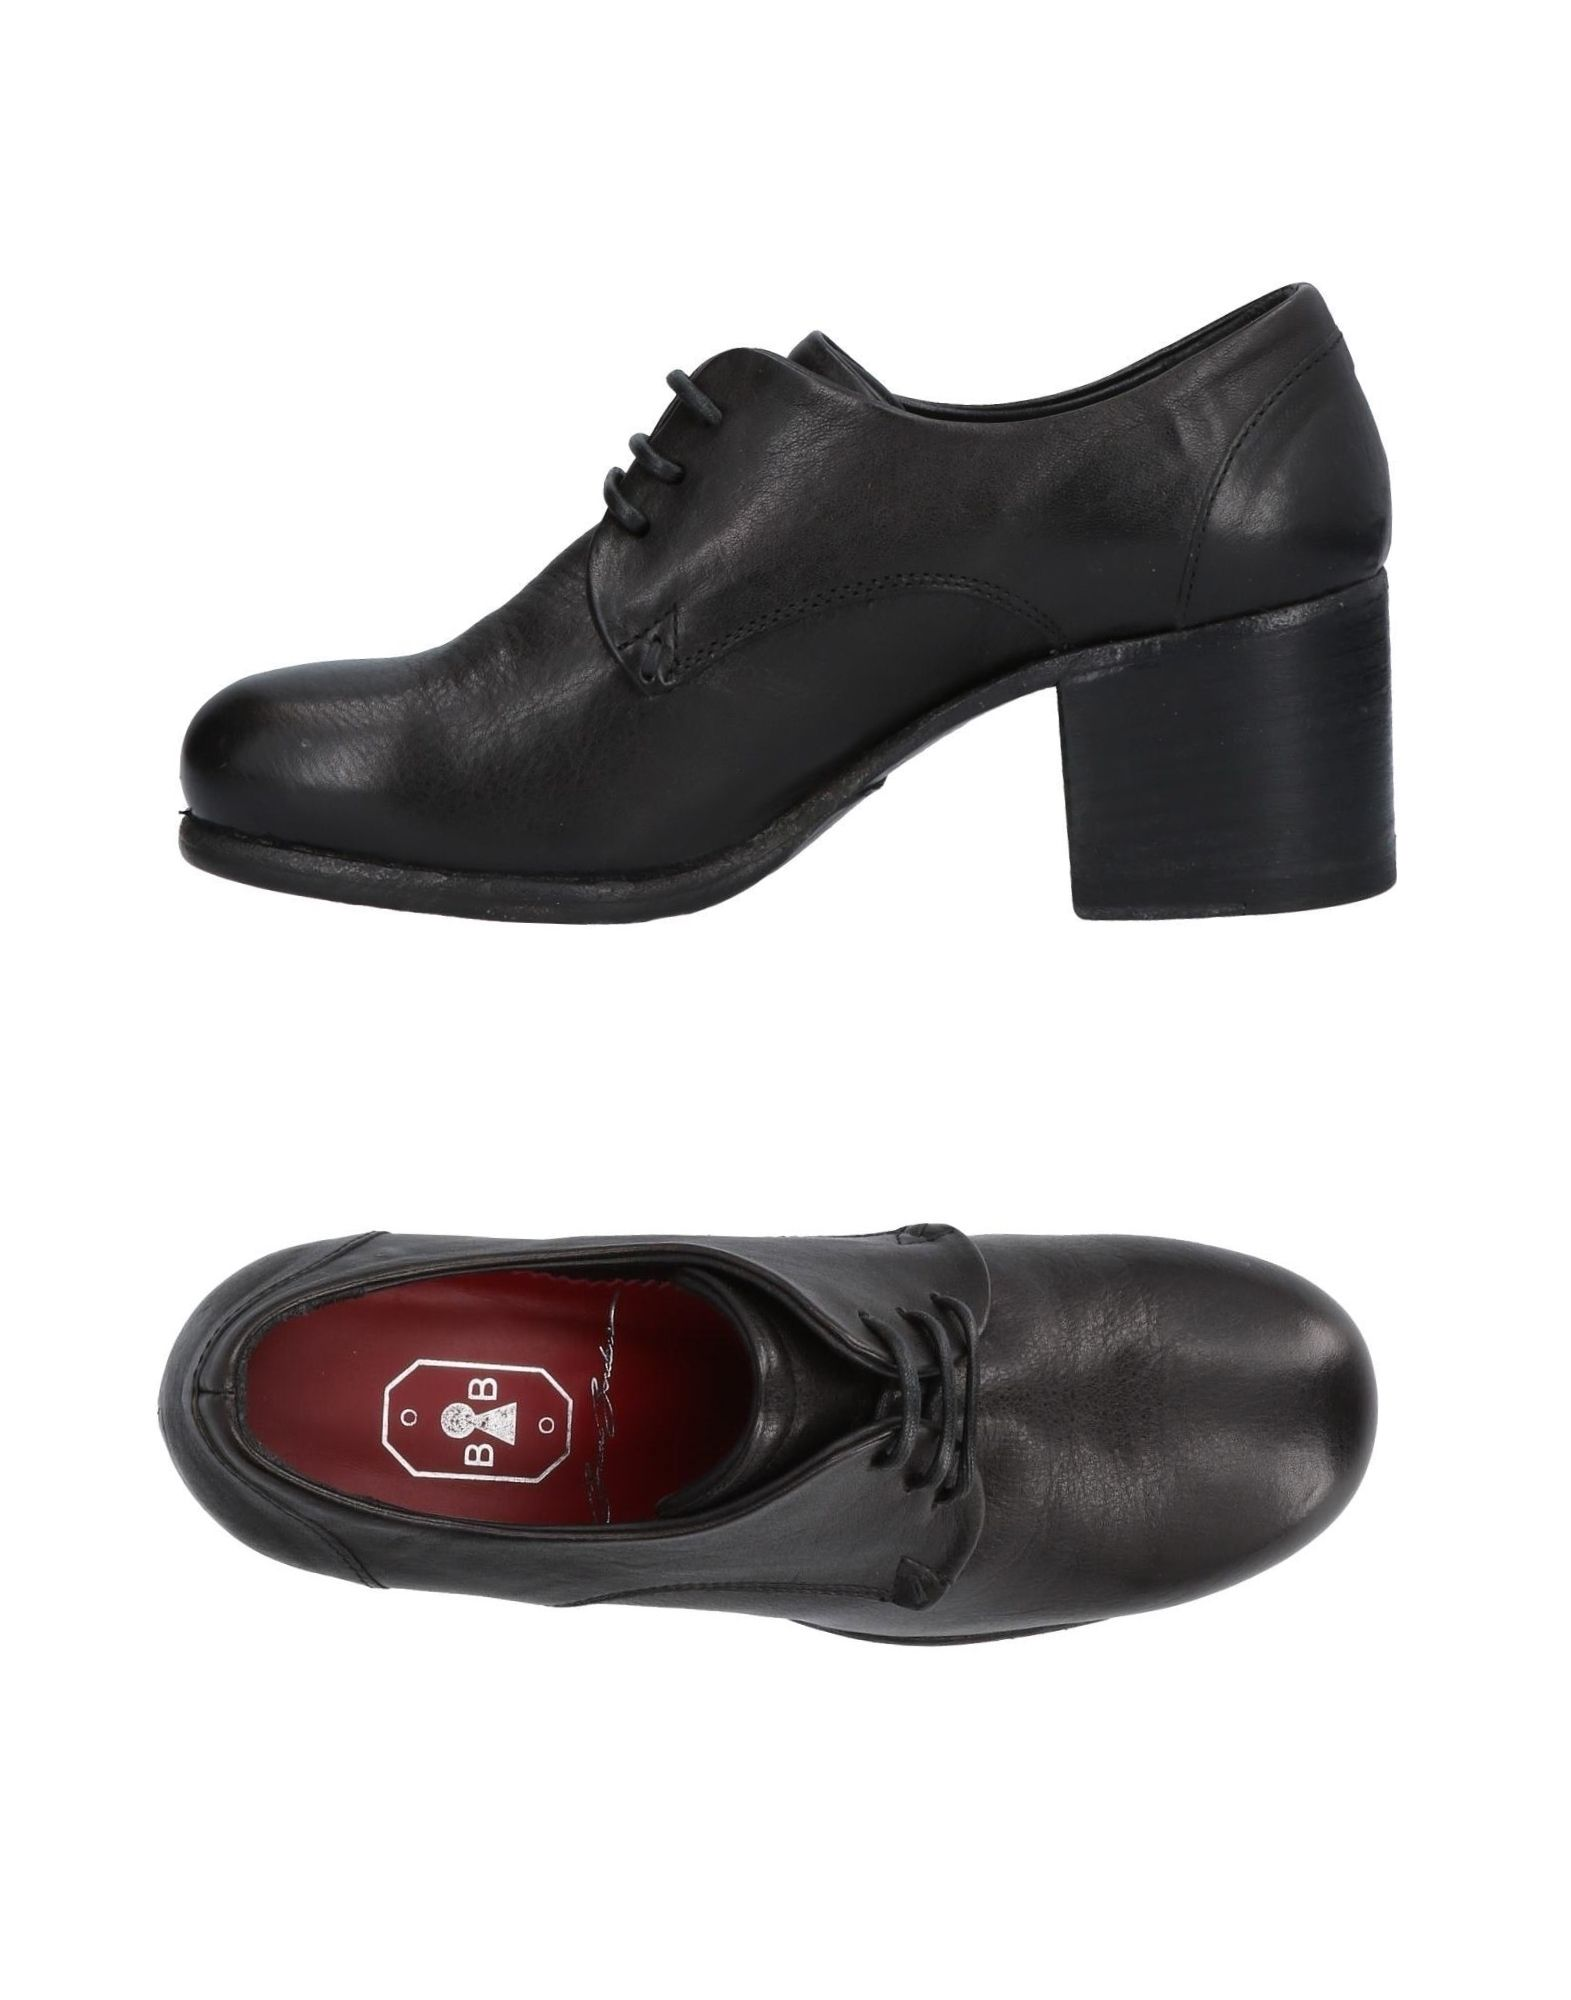 BRUNO BORDESE Laced Shoes in Black